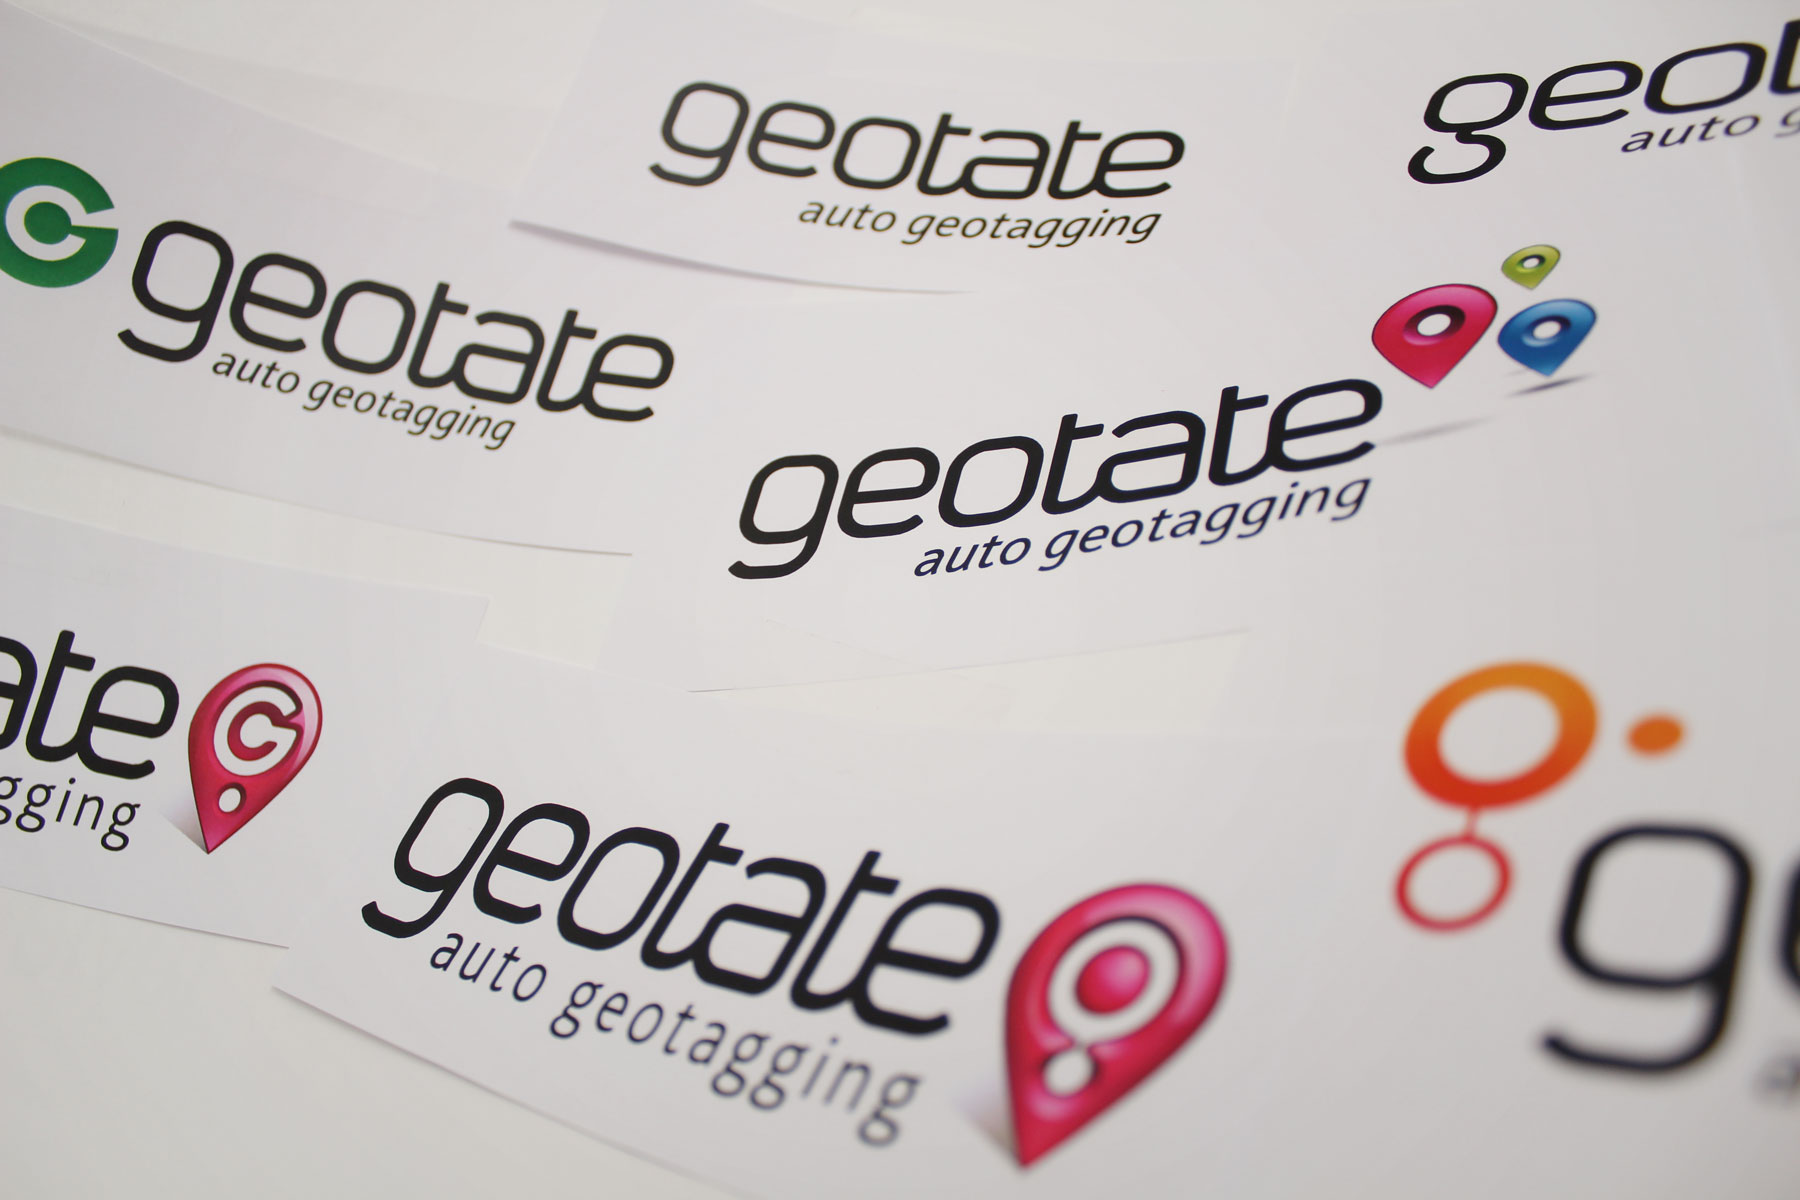 The iconography was combined with a bespoke wordmark - To make the brand truly unique. The auto geotagging proposition was developed to clearly convey the product offer.